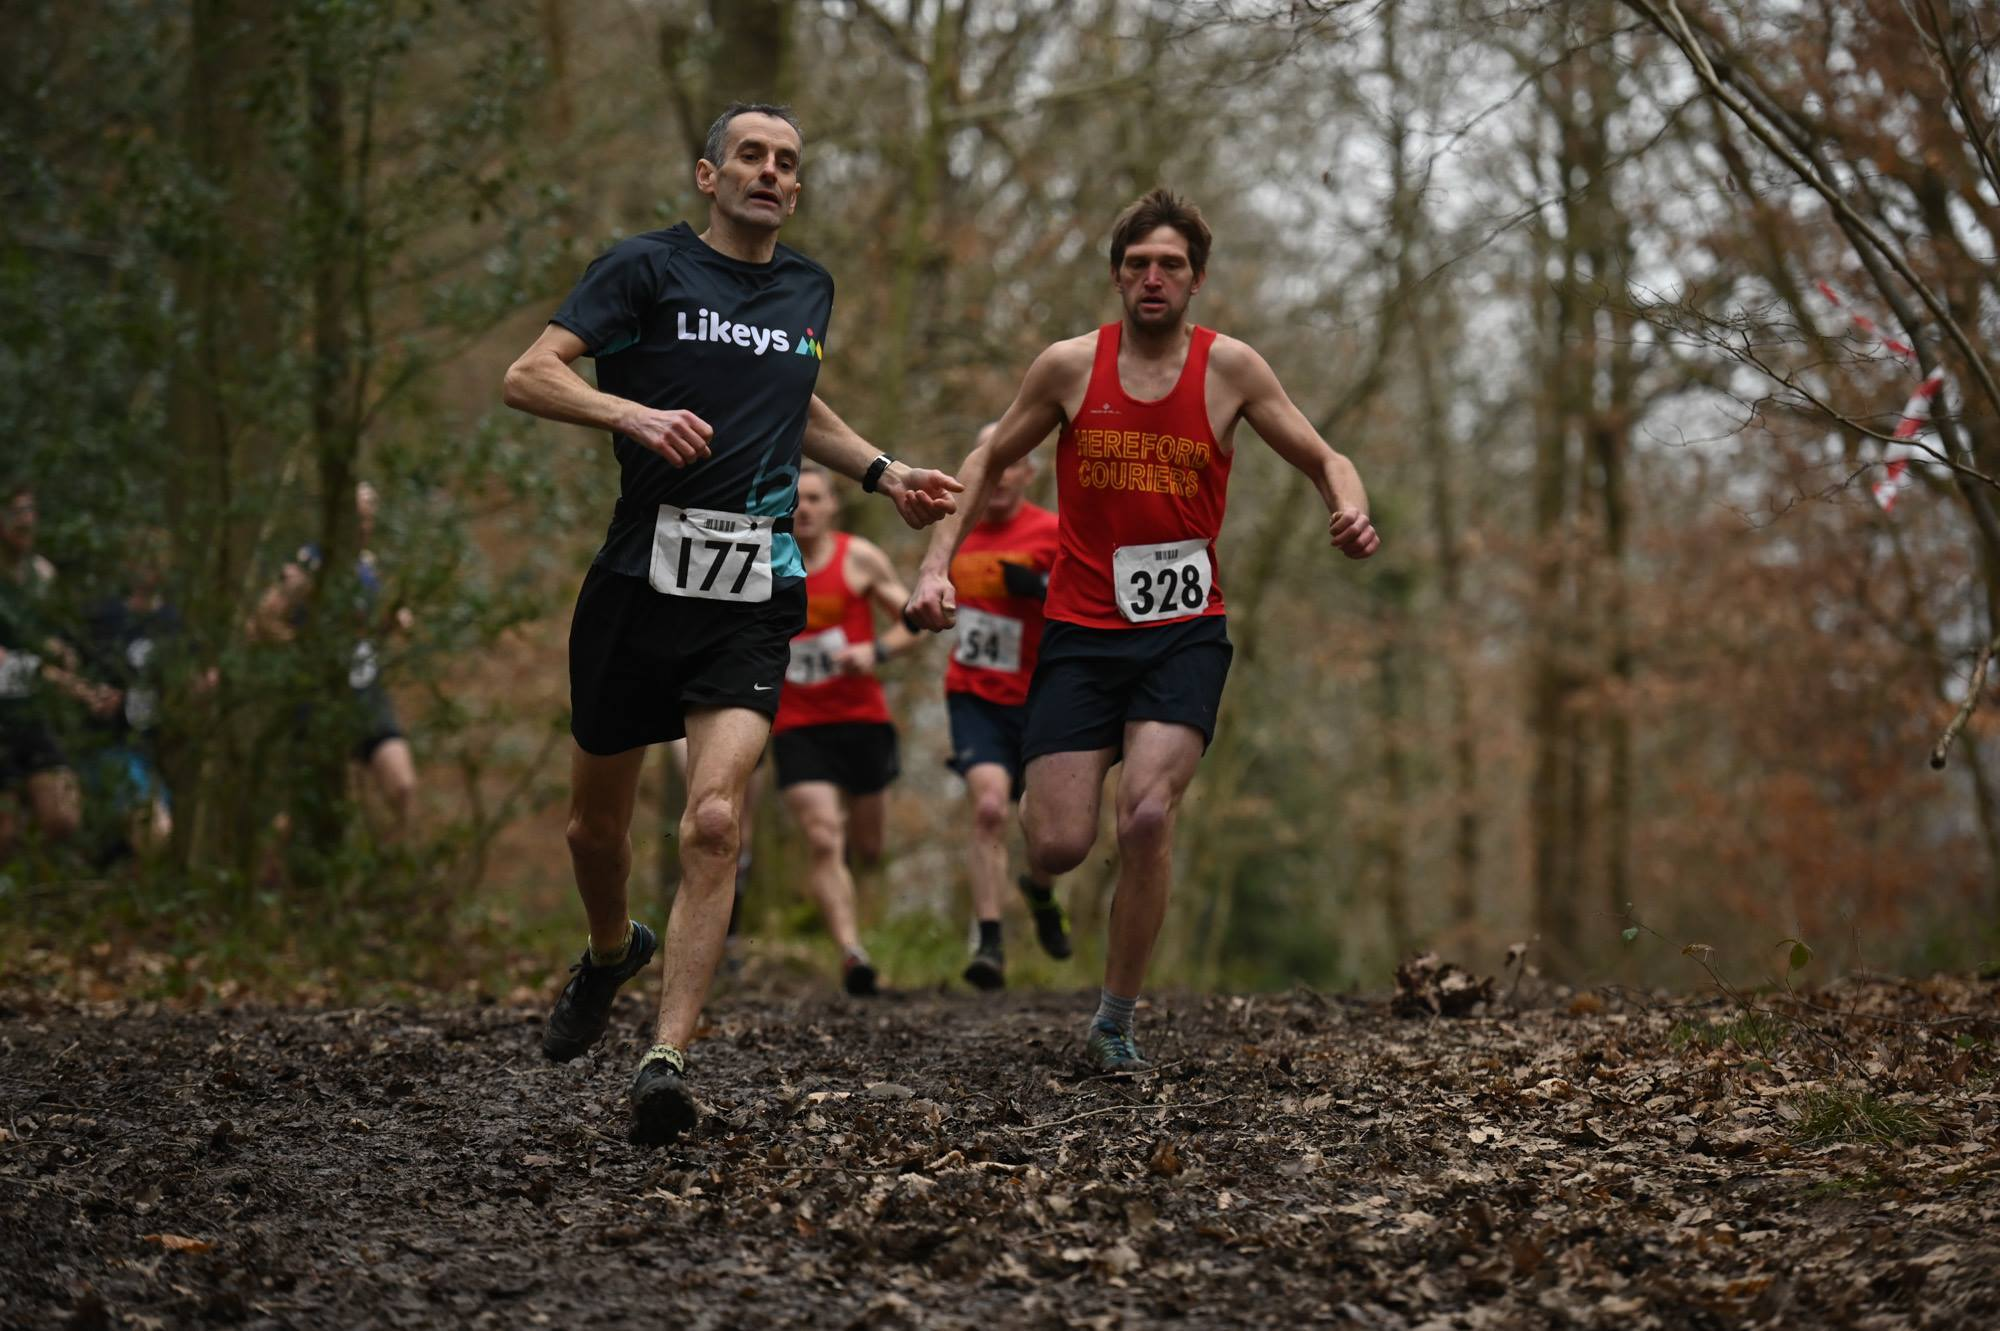 The front of the race was a close battle in the Wye Valley Runners' Muddy Woody 6 race. Picture: Peter Nugent